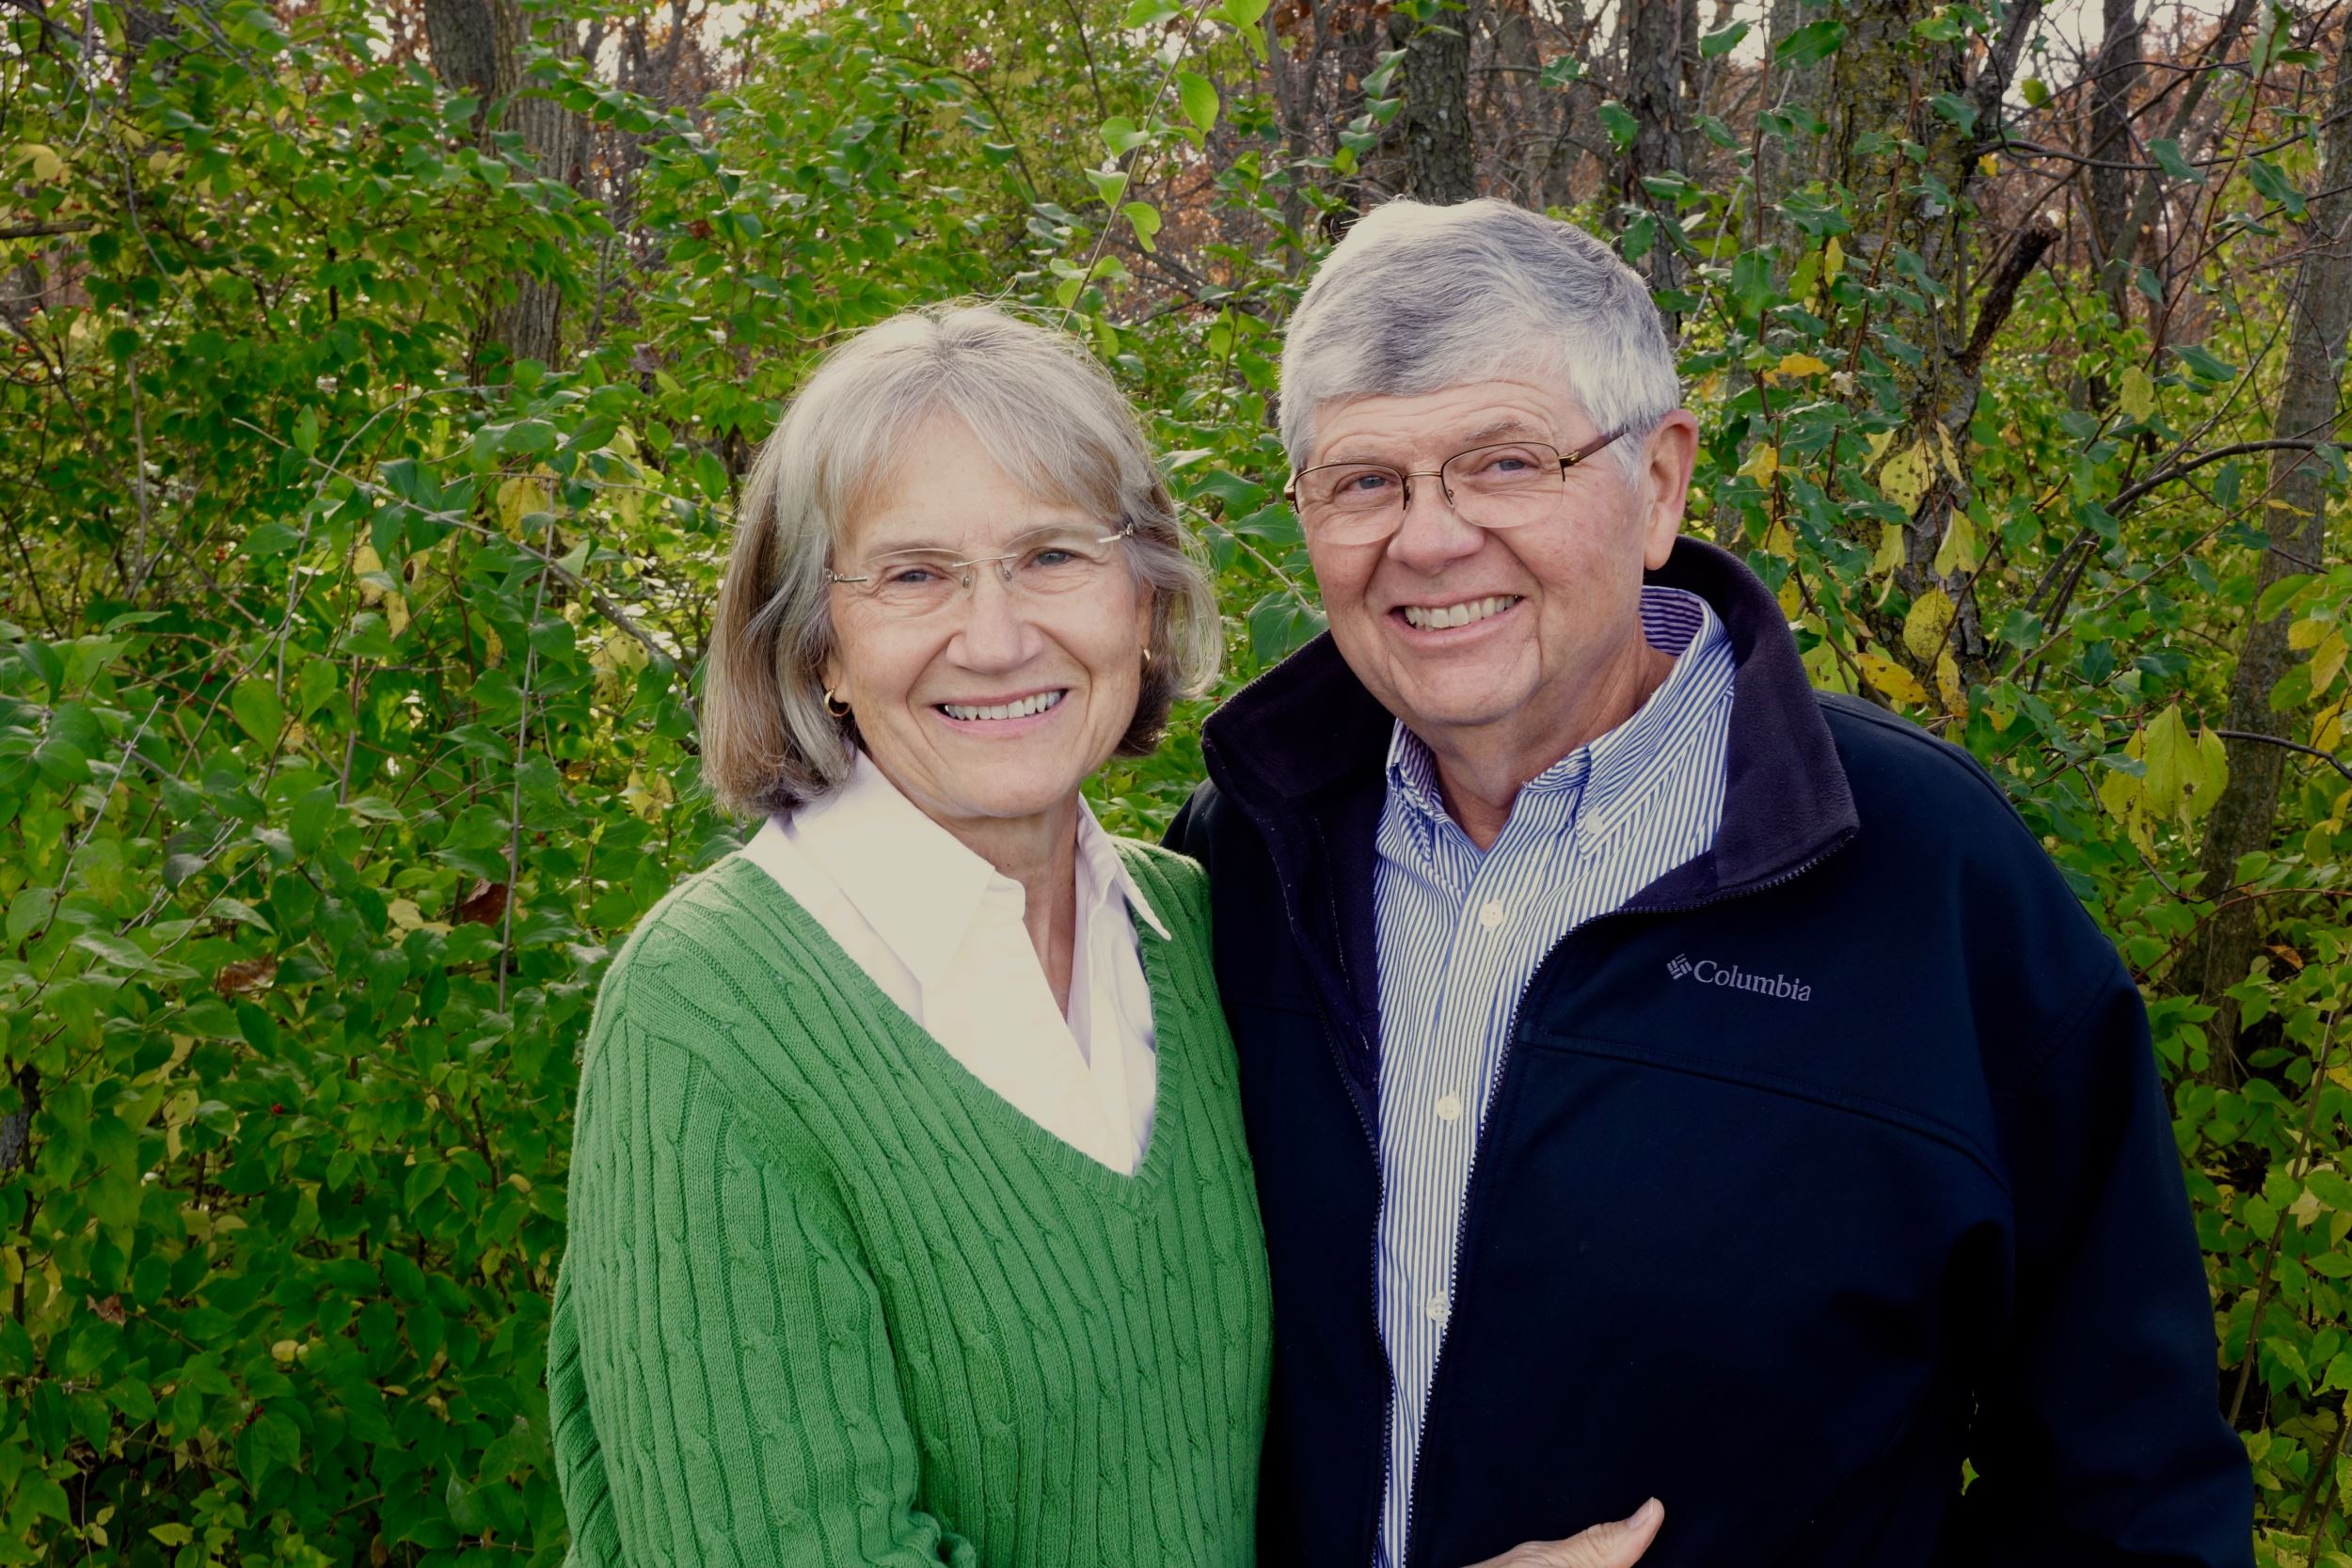 George and Trish Patrick of Ames win Hagie Heritage Award